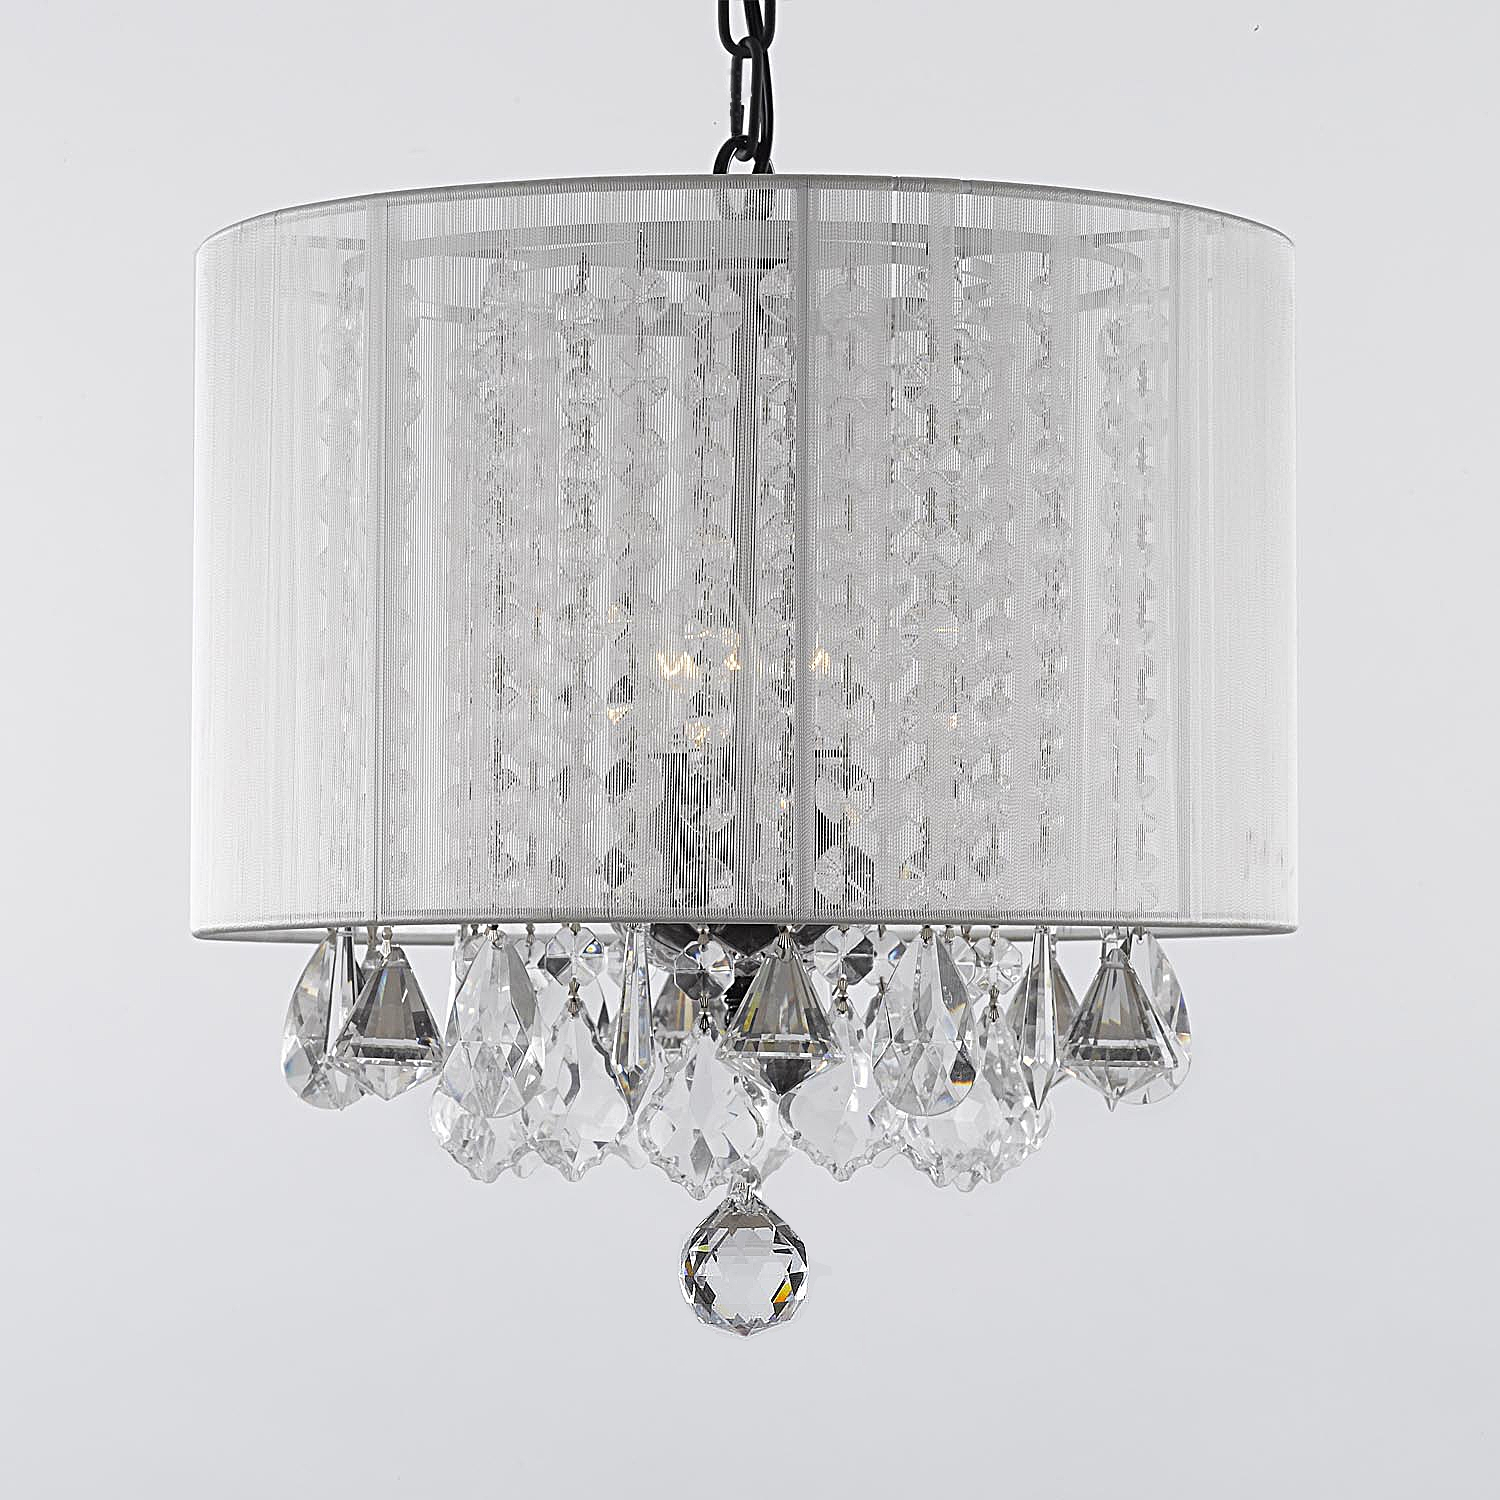 Best Chandelier With Shades Photos Best Home Decor Inspirations With Regard To Crystal Chandeliers With Shades (View 2 of 25)